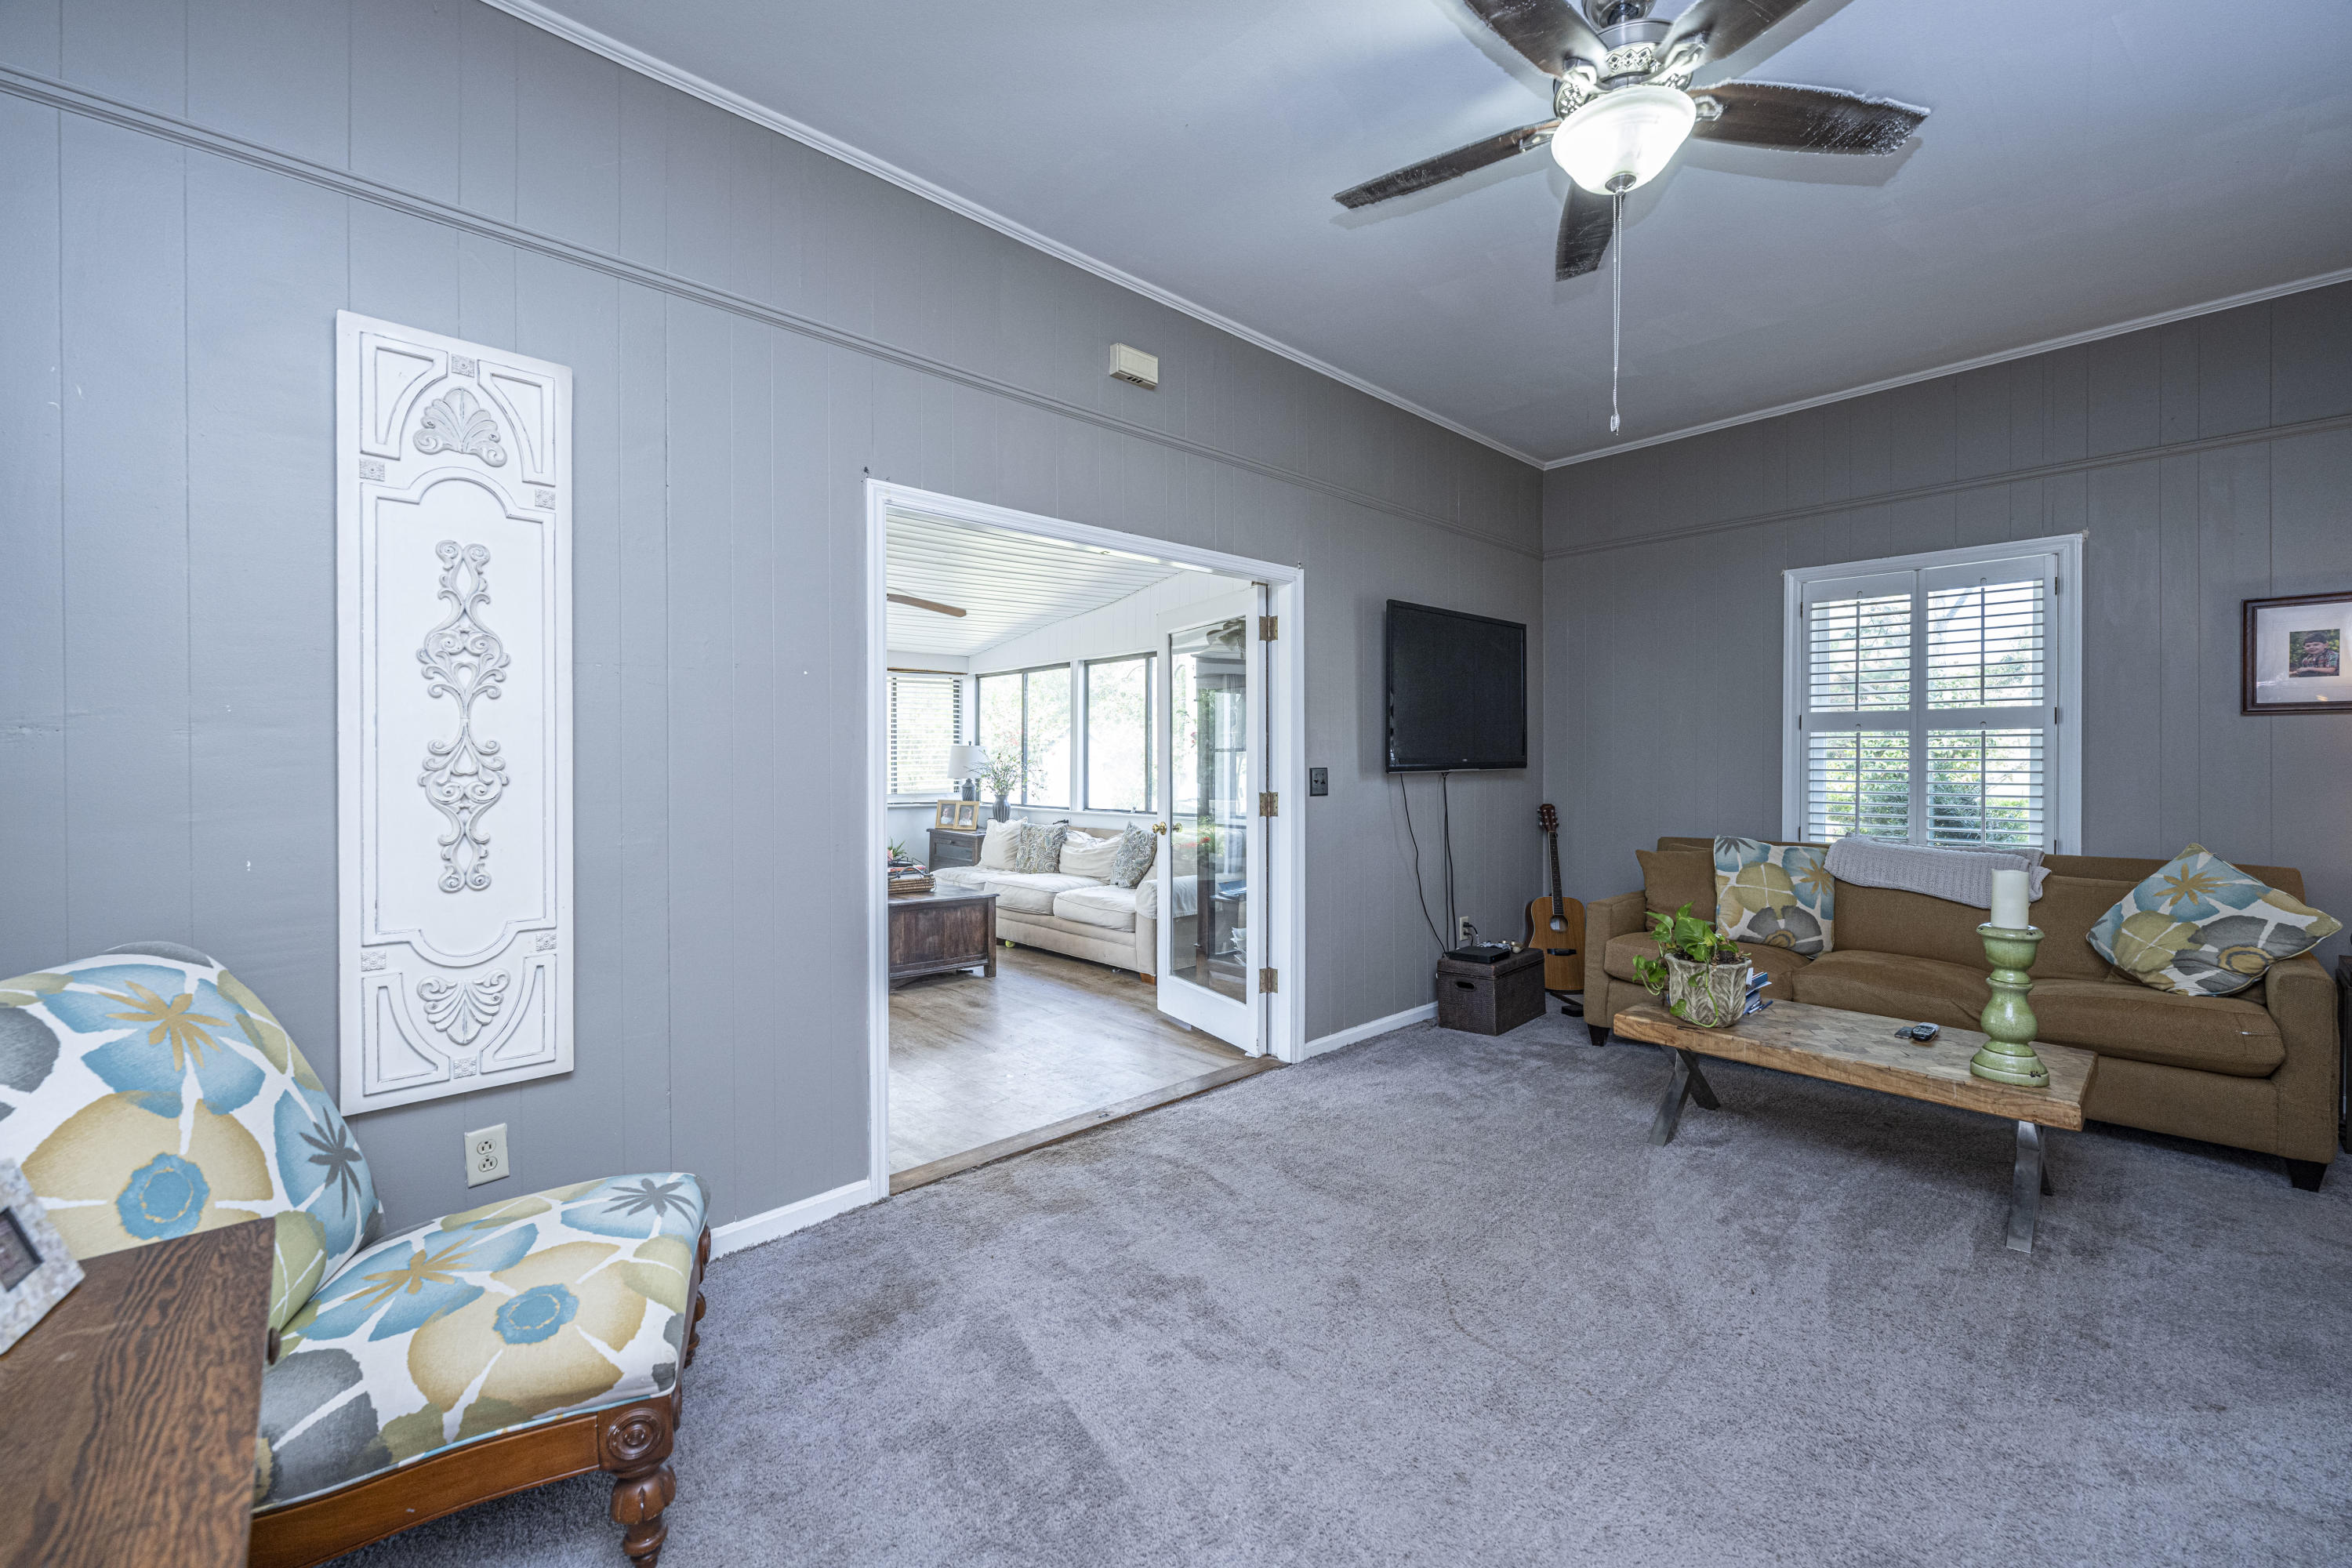 Stiles Point Homes For Sale - 775 Sparrow, Charleston, SC - 14